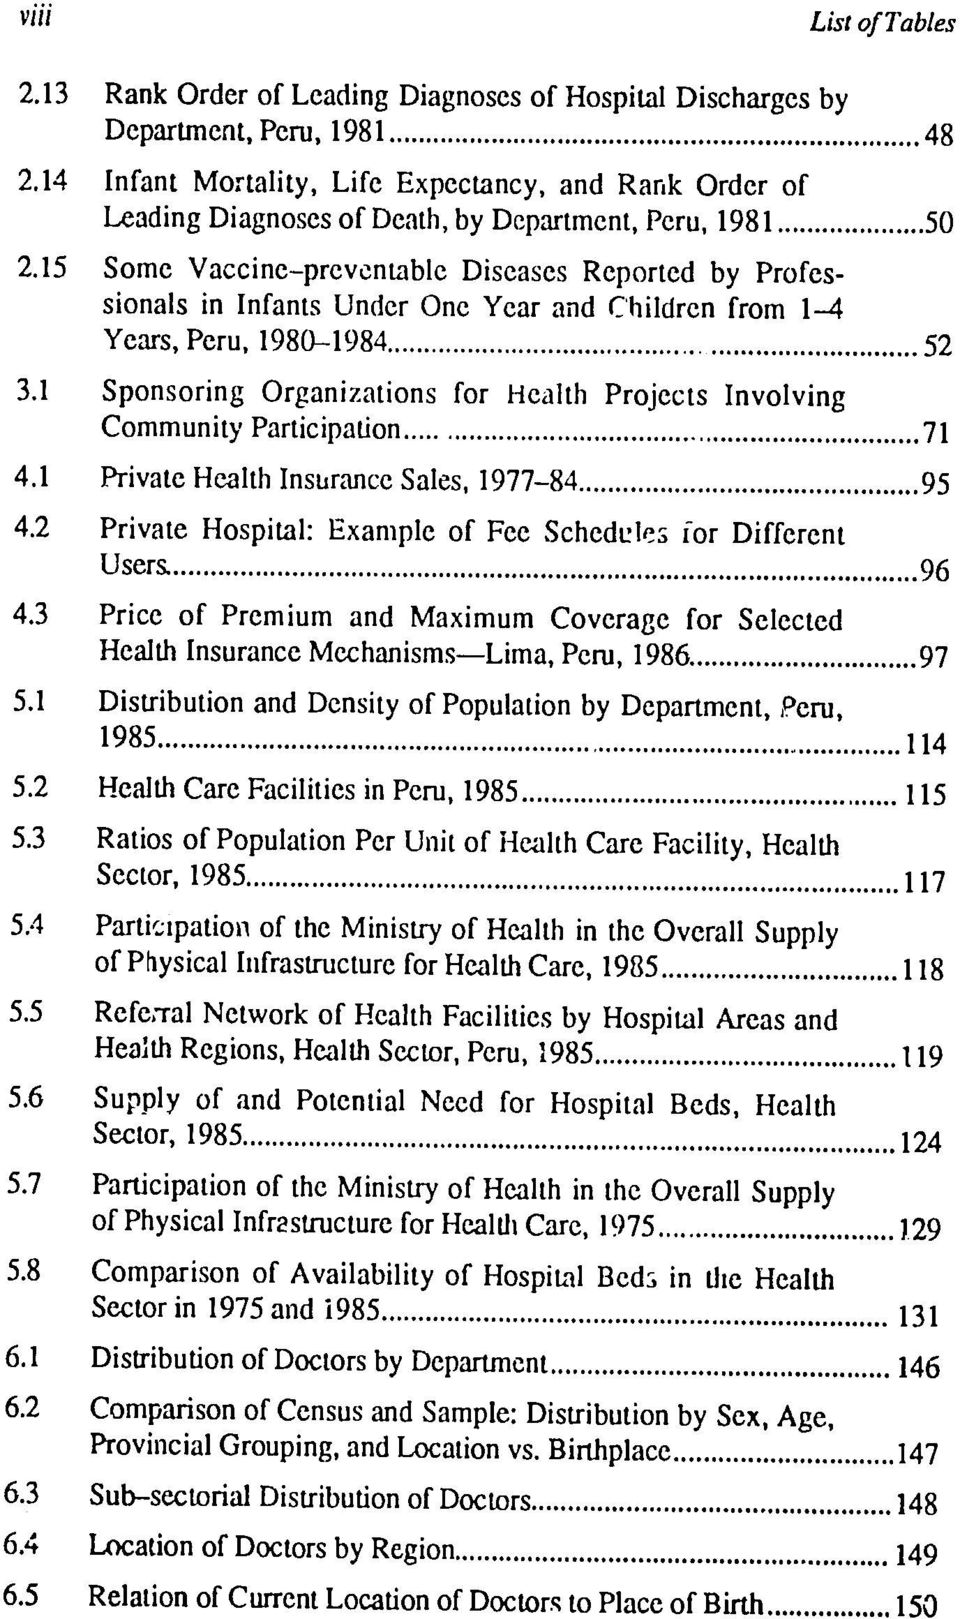 1 Sponsoring Organizations for Health Projects Involving Comm unity Participation... 4.1 Private Health Insurance Sales, 1977-84... 95 4.